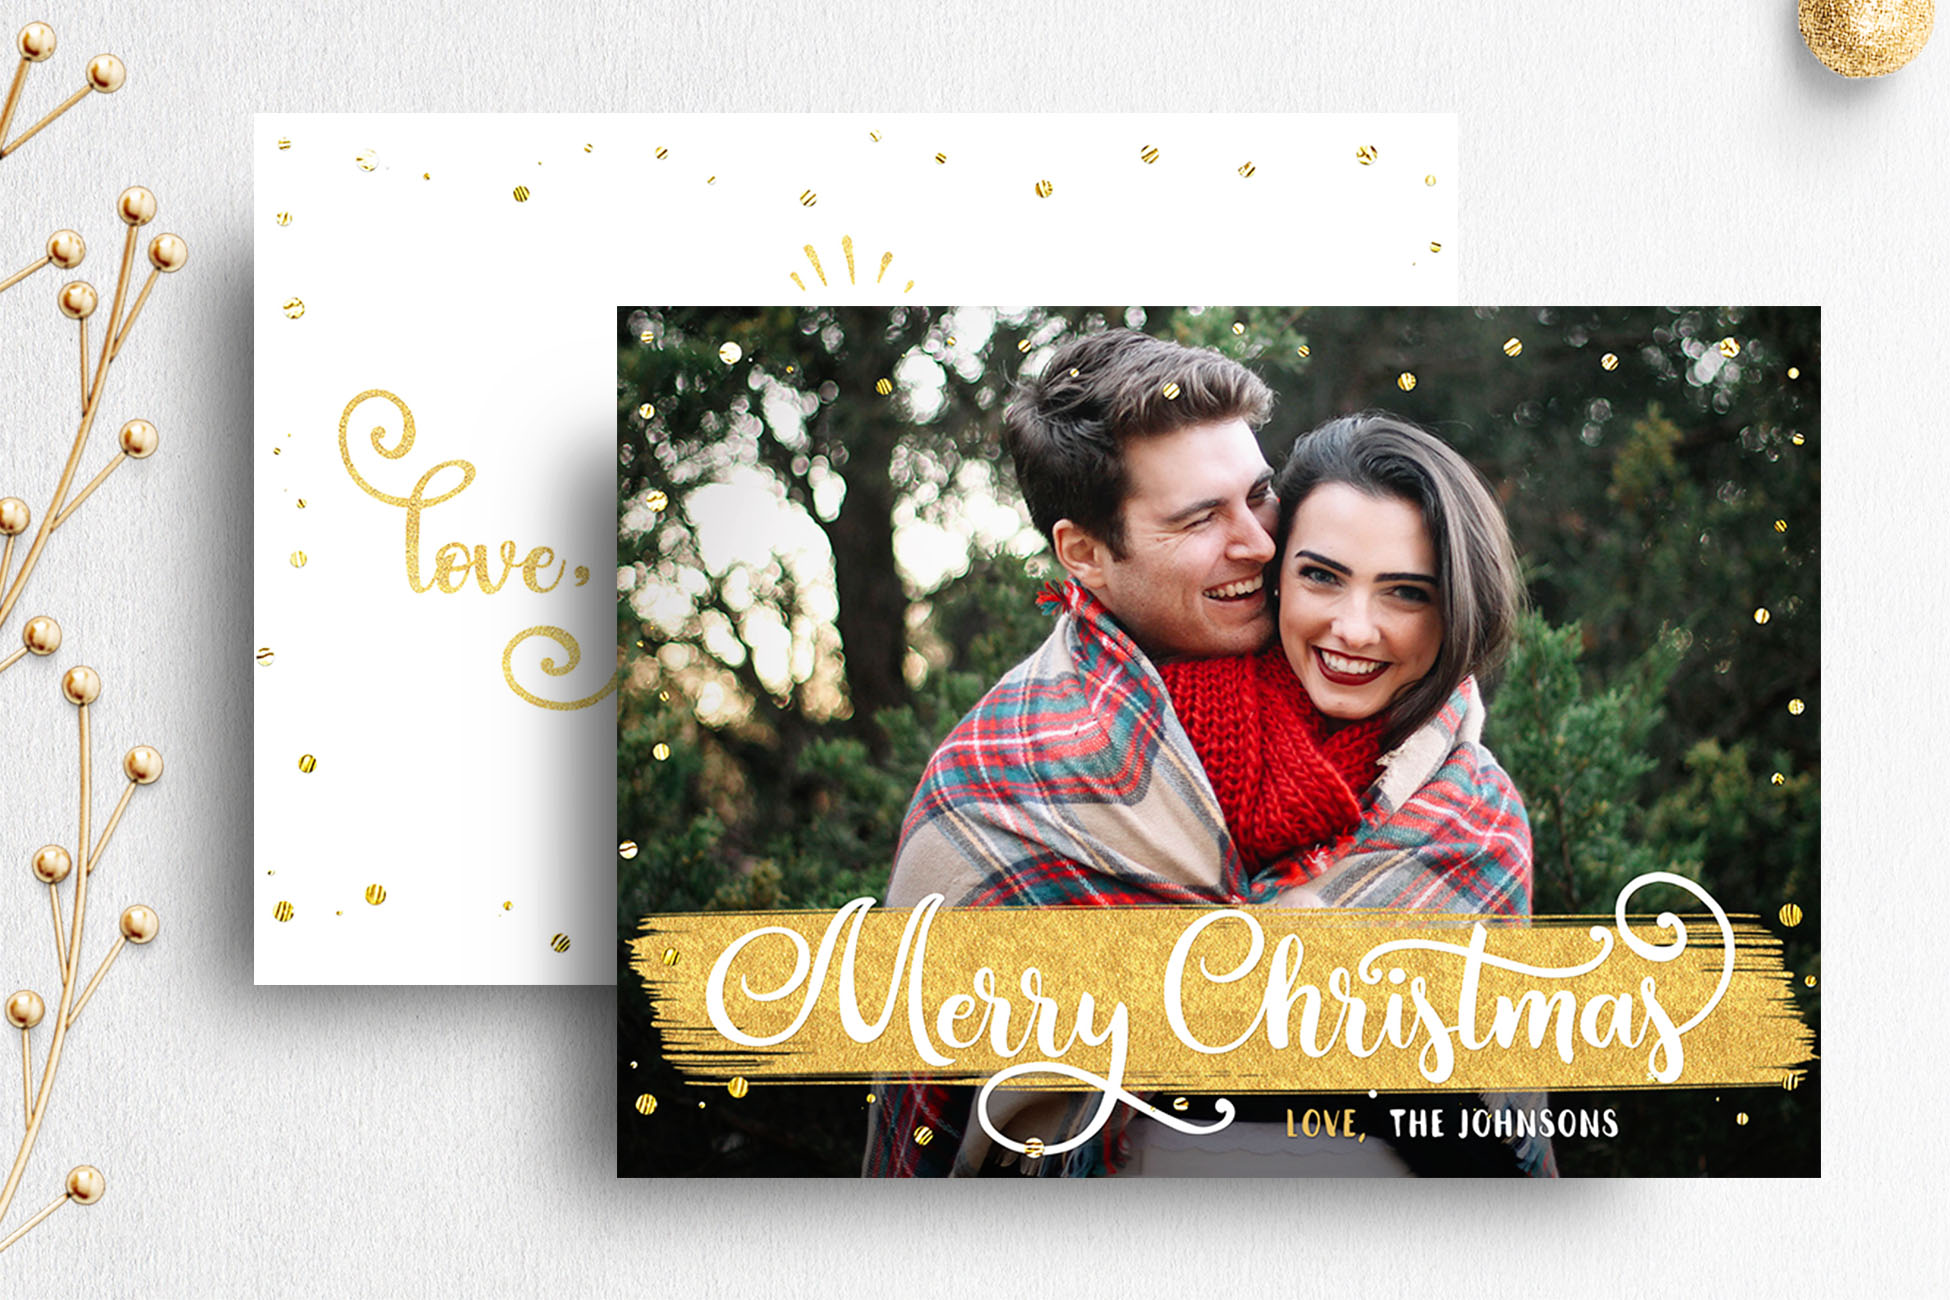 Christmas Card Template For Photographer 007 Example Image 1